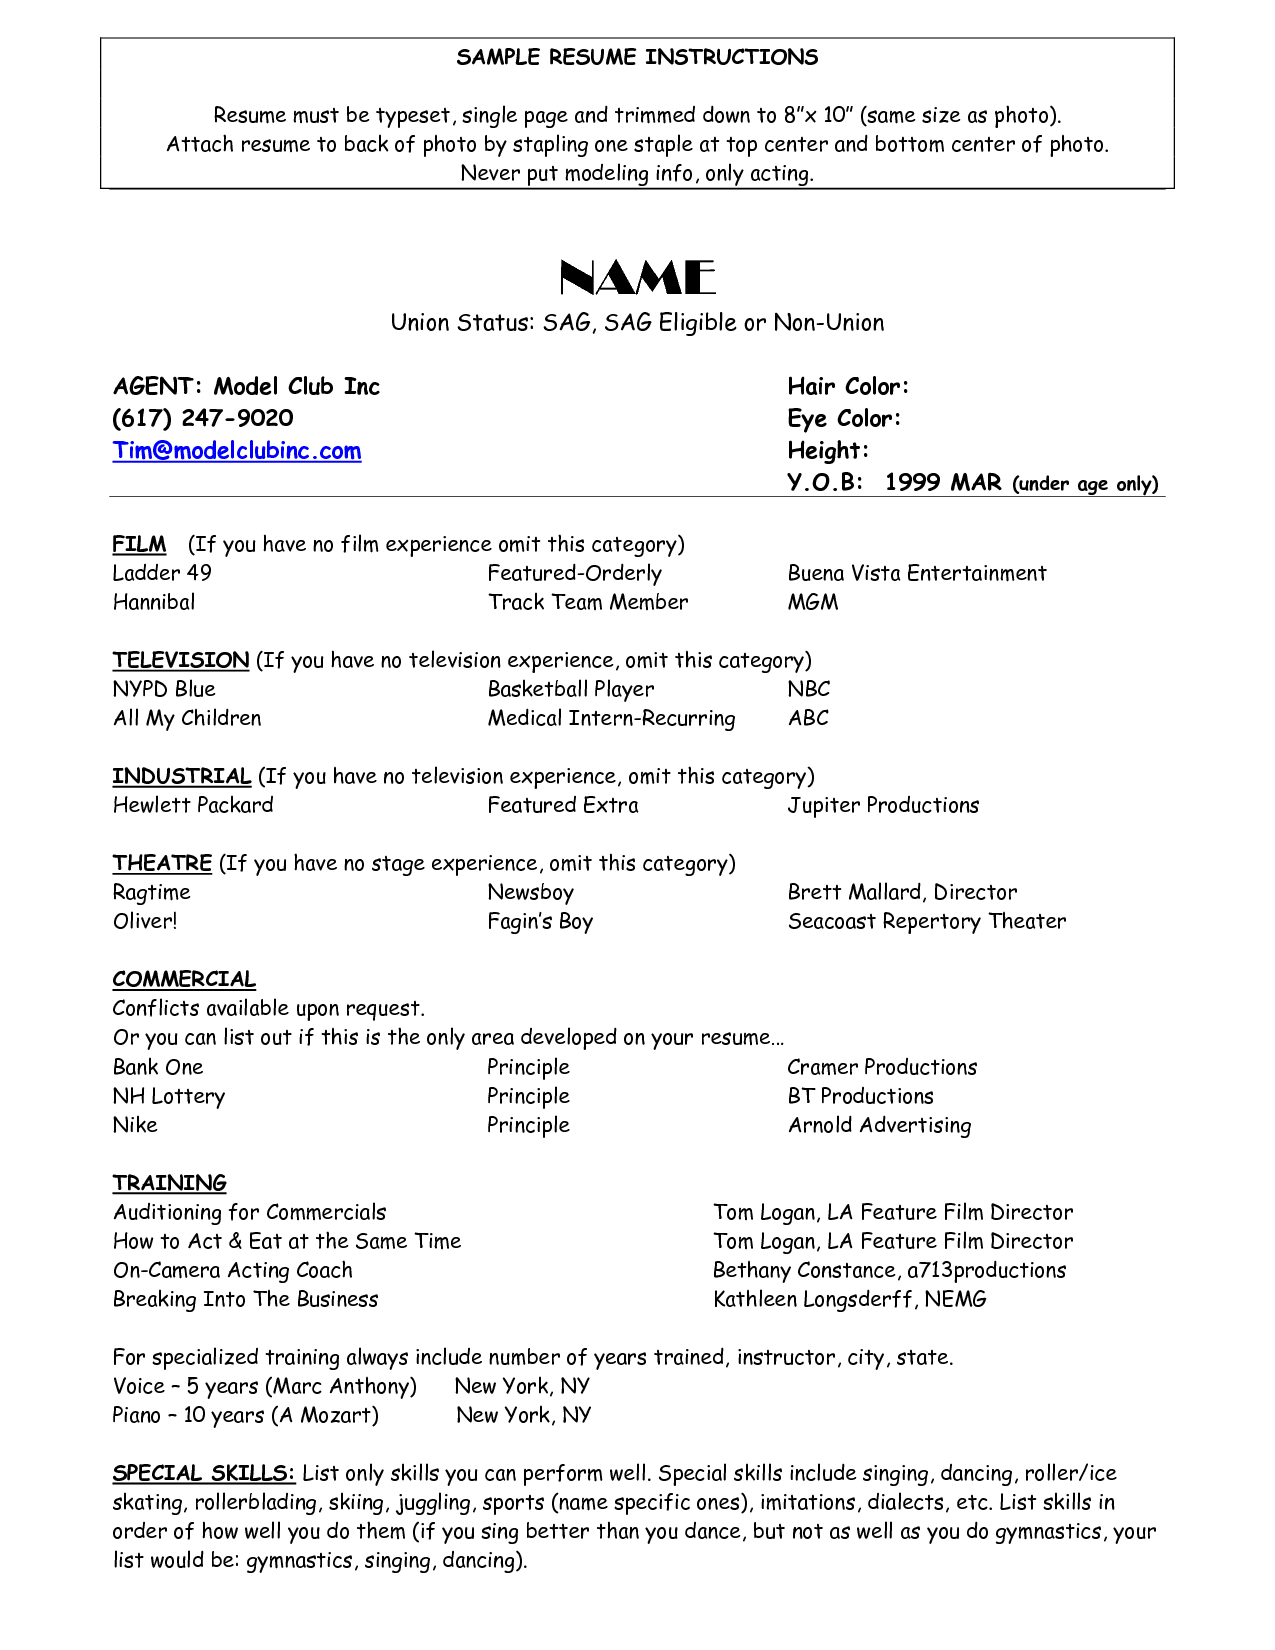 Acting Resume Beginner Glamorous Resume For Child Actor  Scope Of Work Template  Acting Resumes .